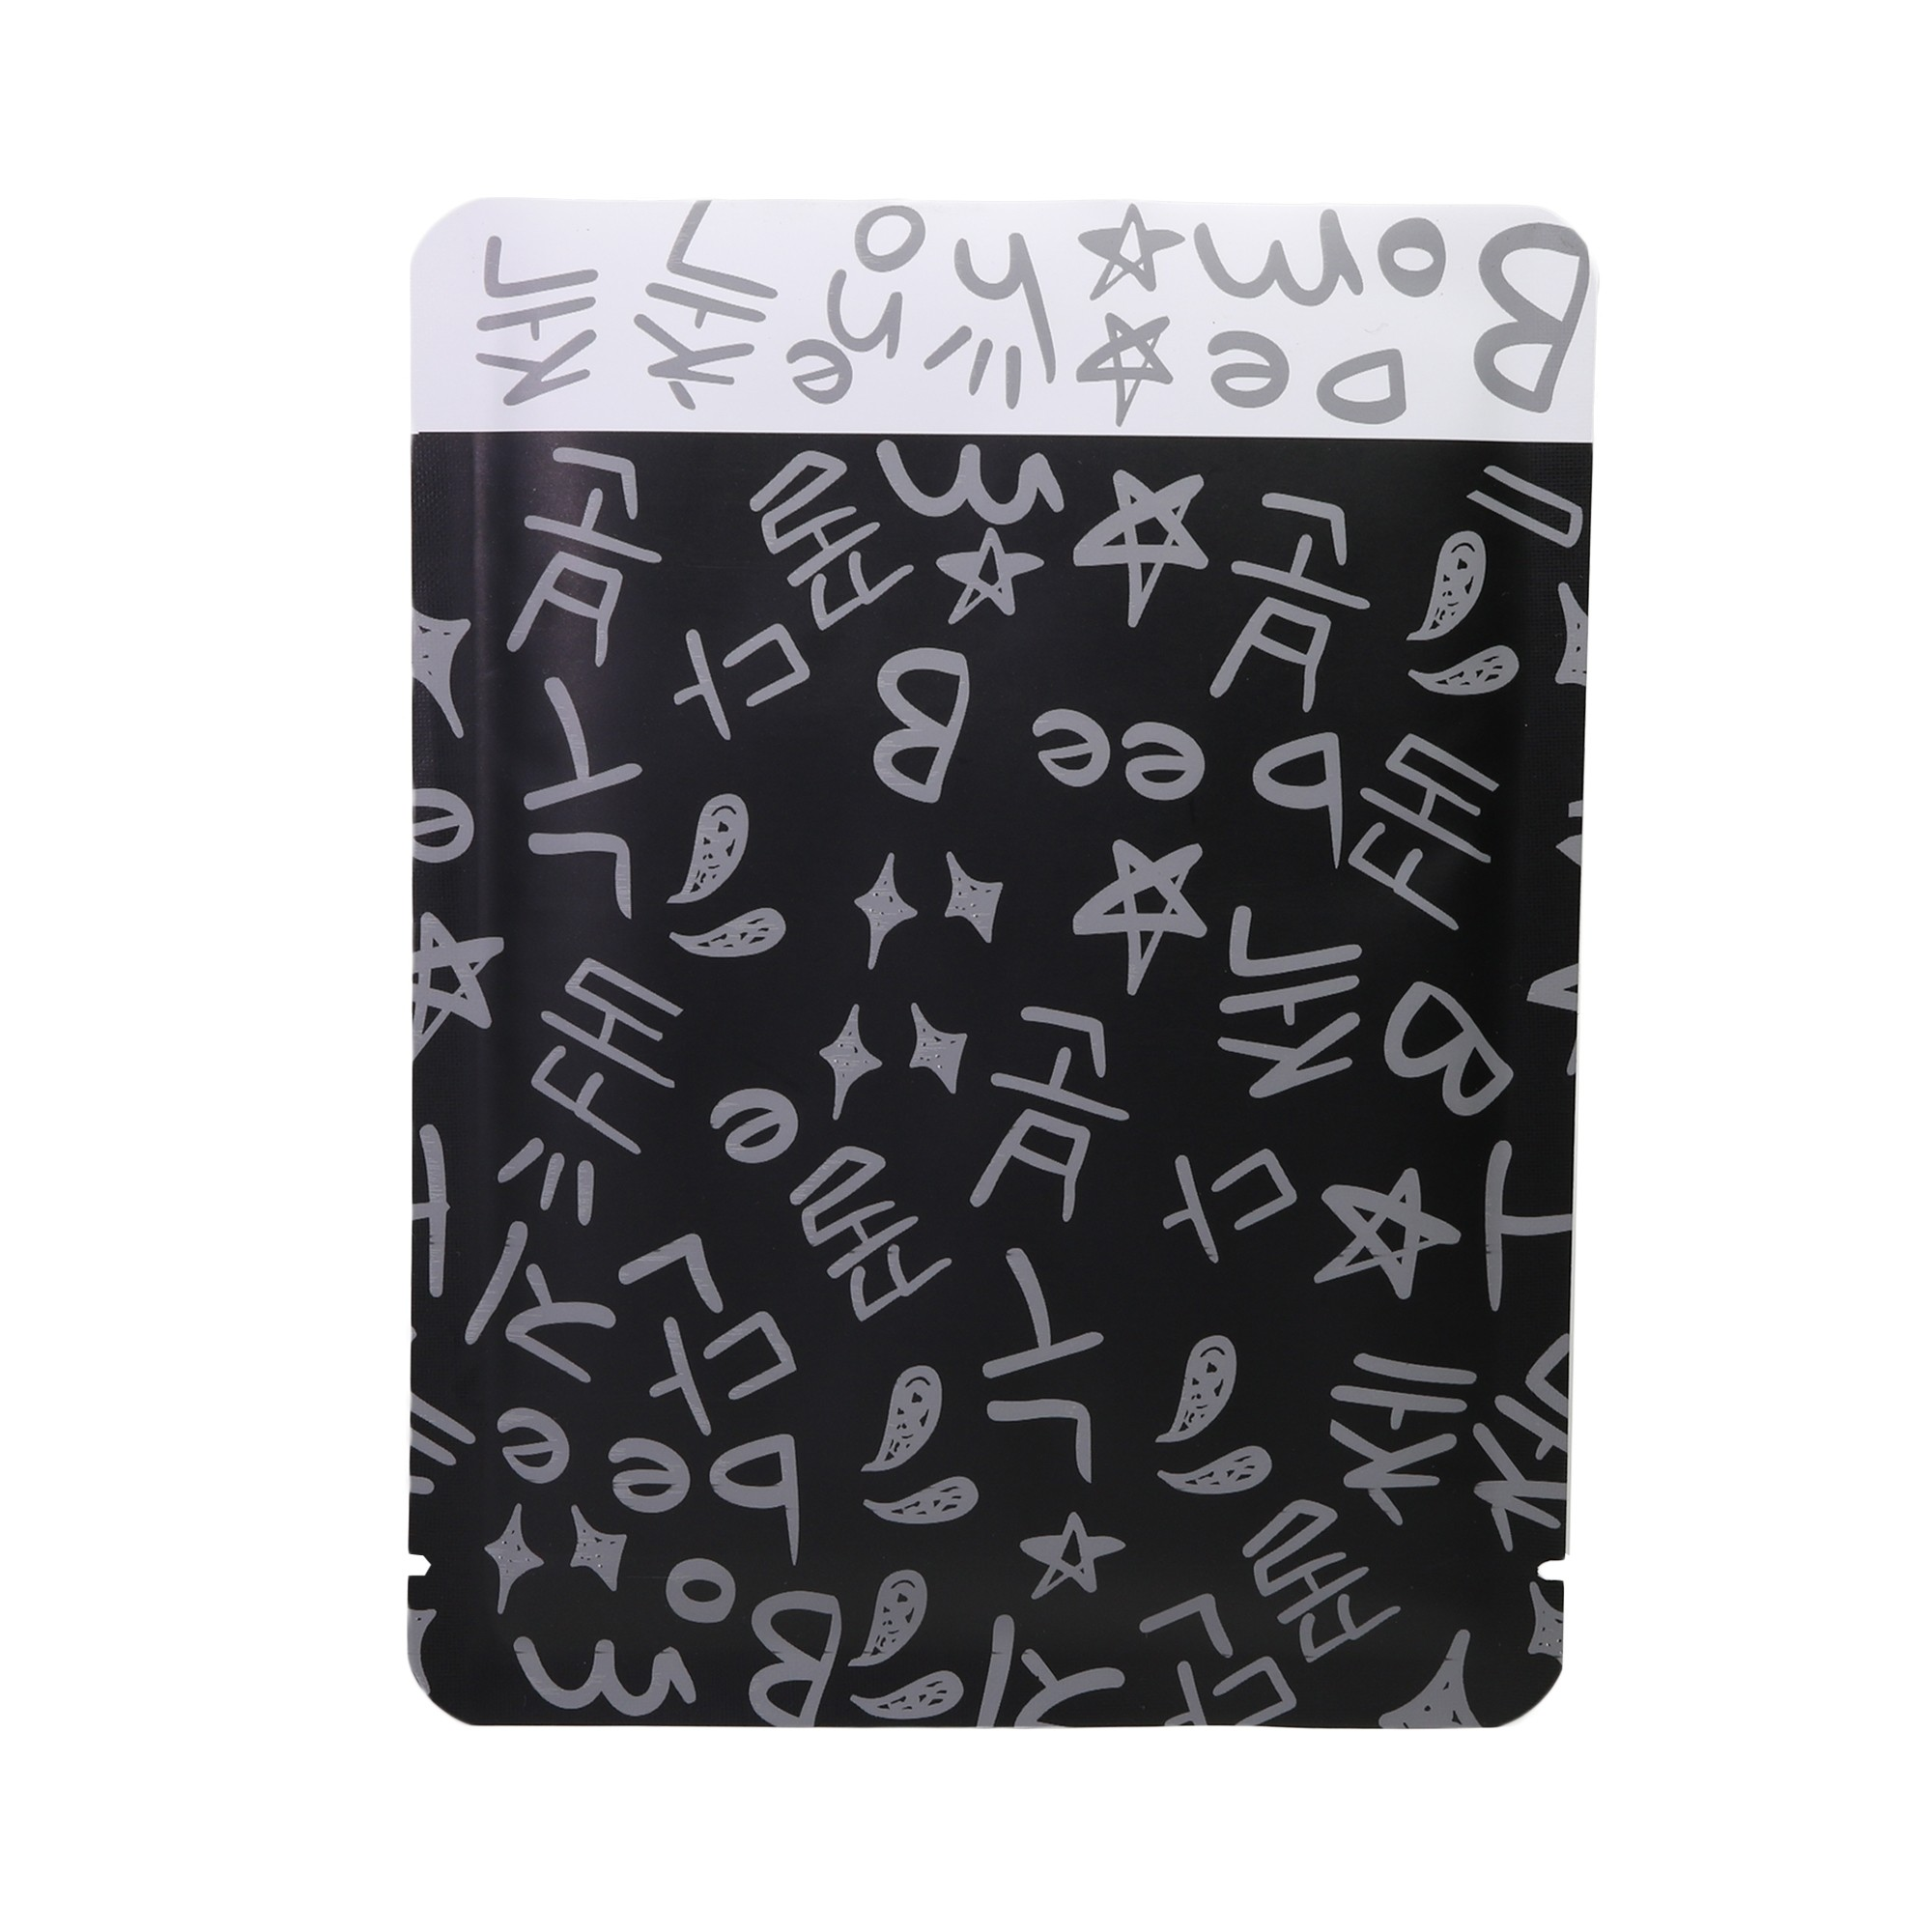 Double-Sided Black & Gray Writing Aluminum Mylar Flat Open Top Bags 12 cm x 16 cm [4.7 inches x 6.3 inches] (500 Bags/Lot)